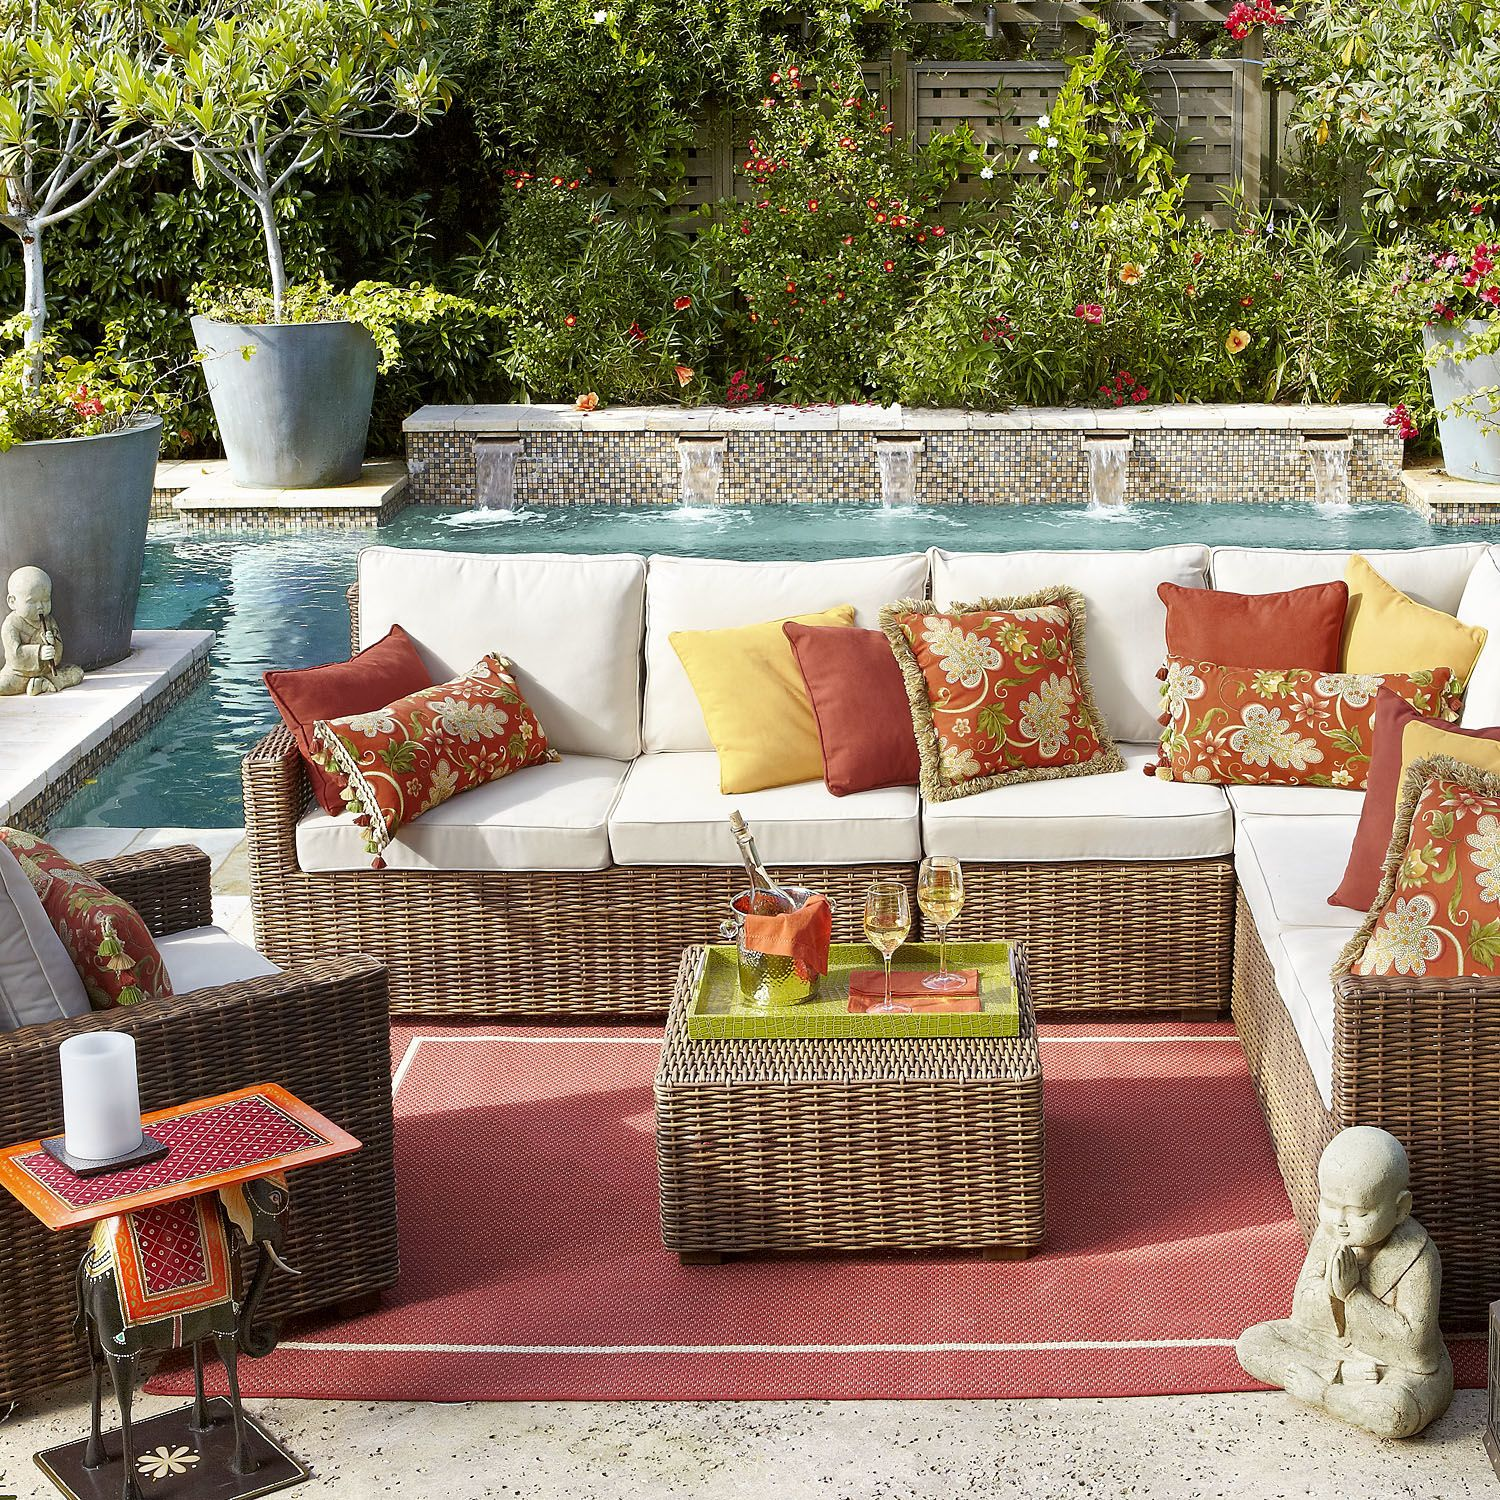 echo beach latte build your own sectional in 2018 get gardeny rh co pinterest com